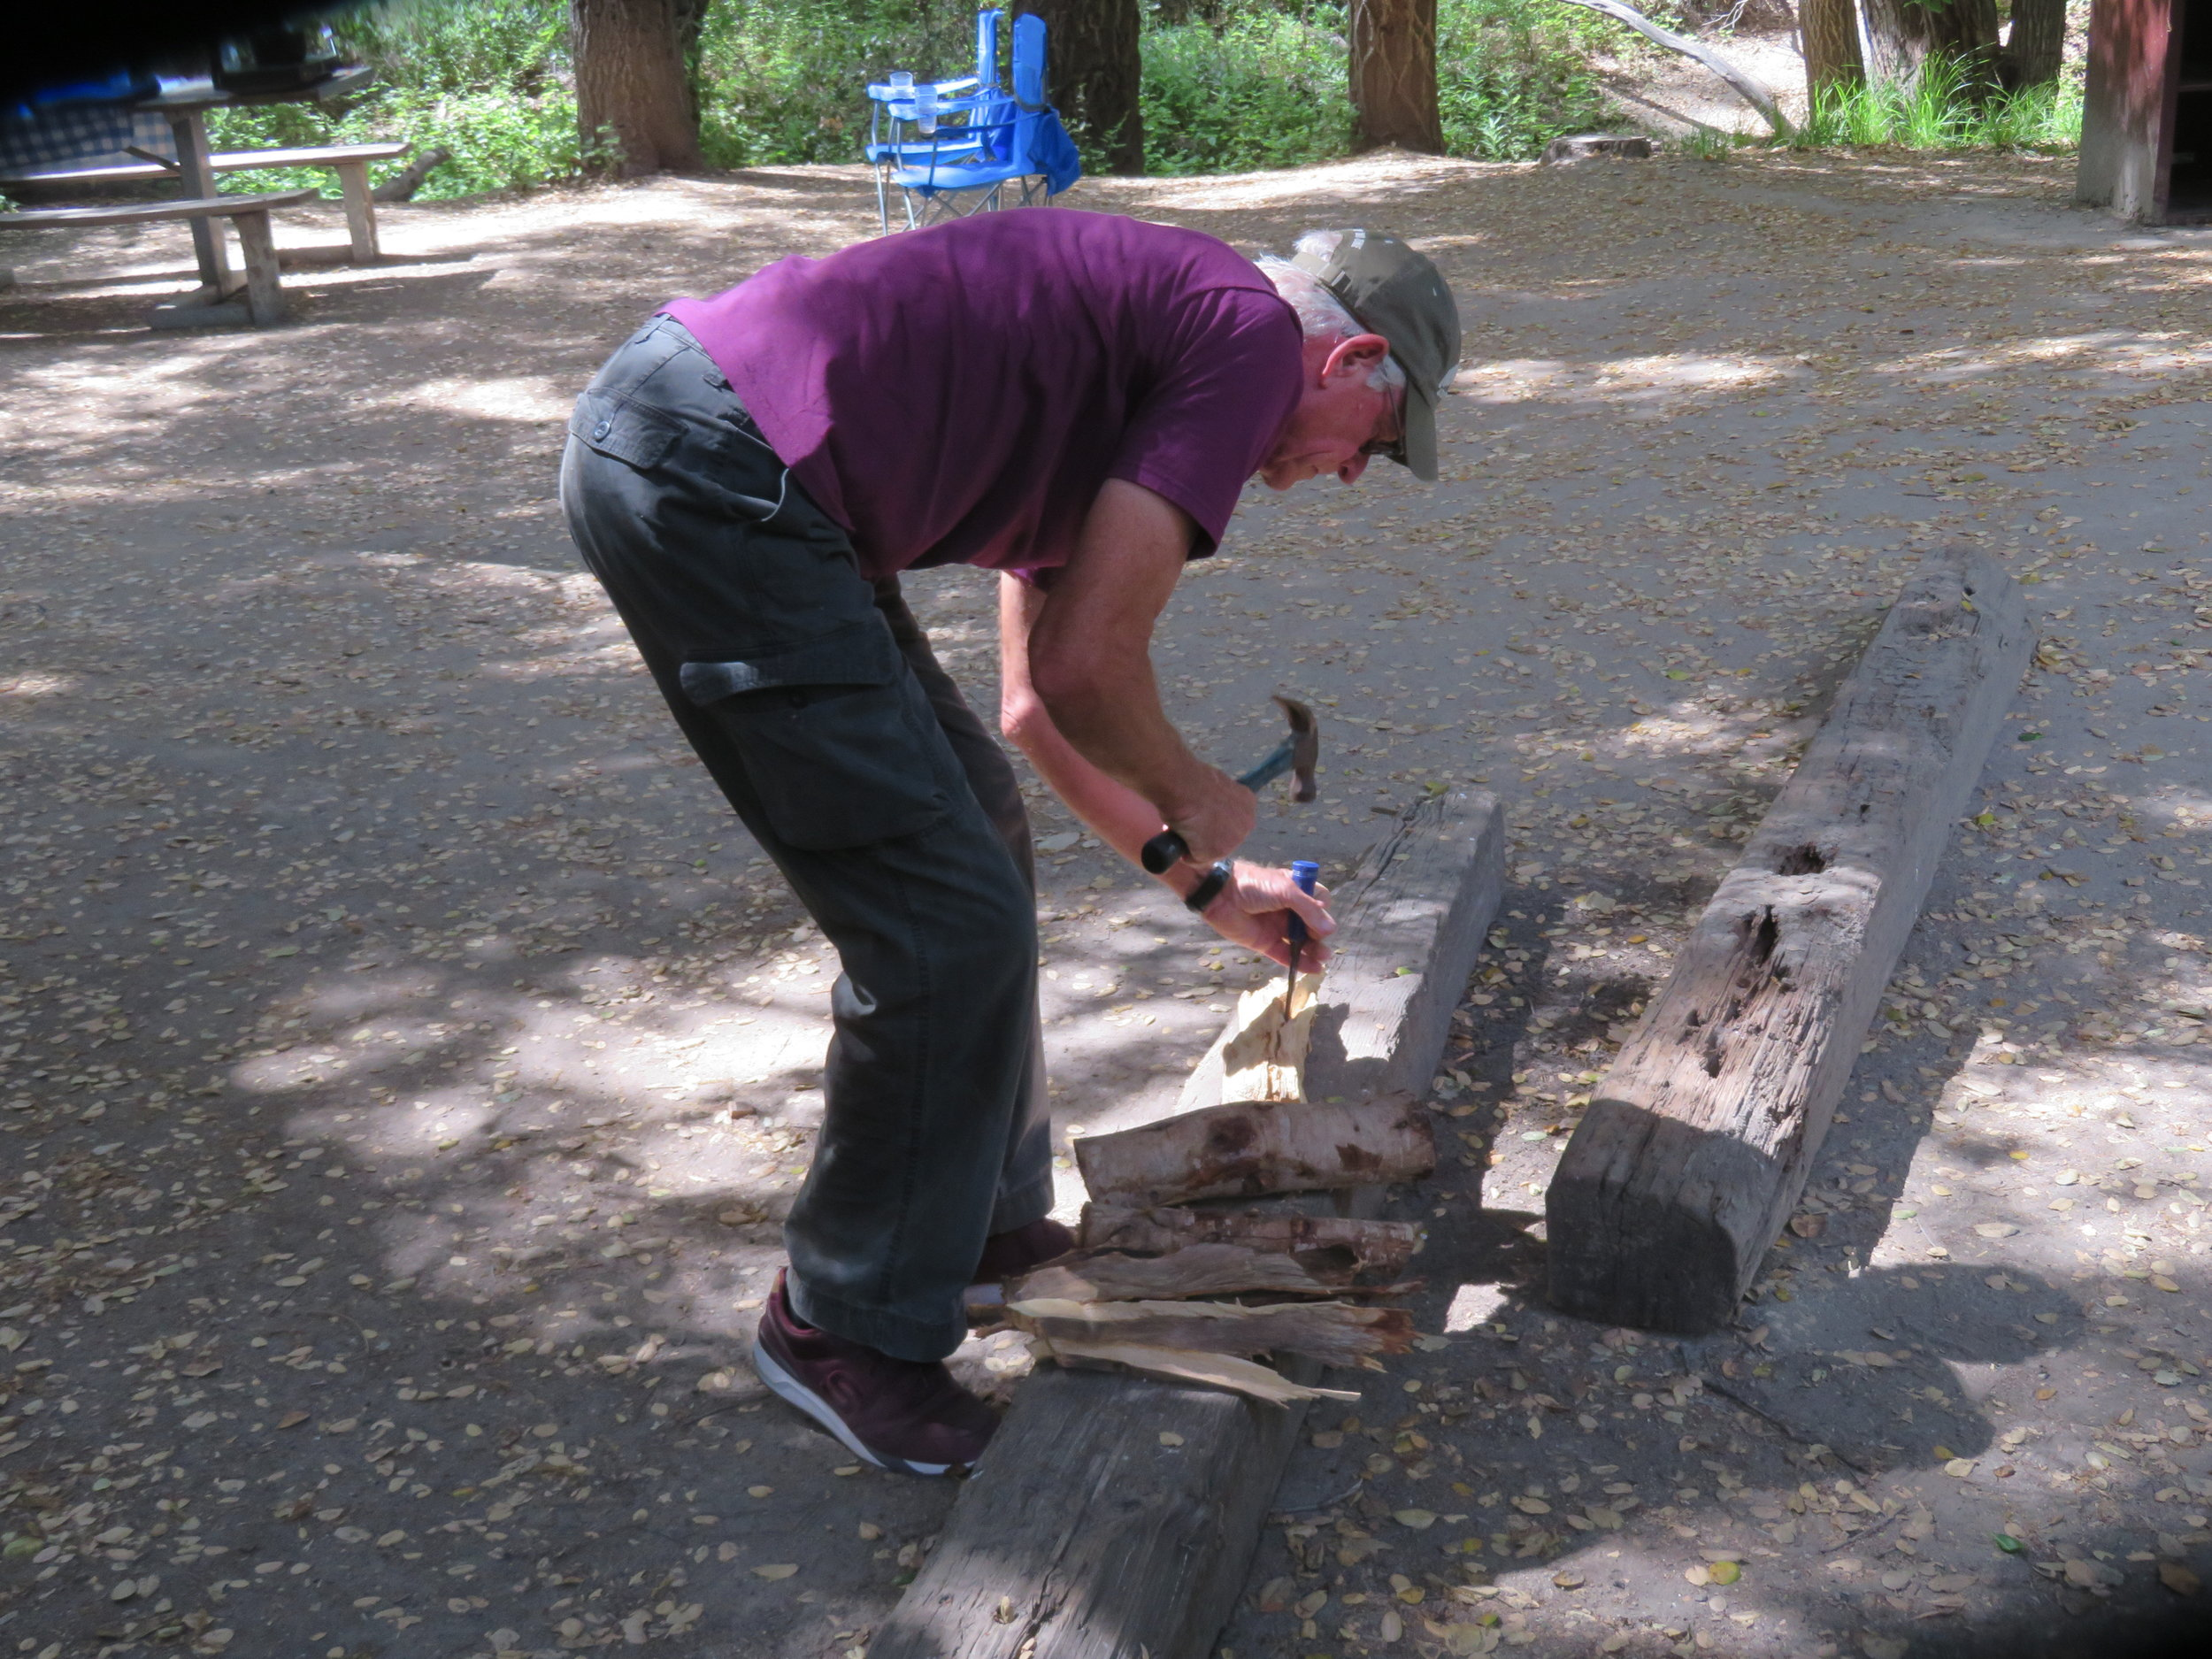 A hammer & chisel worked for splitting firewood, but we put a hatchet on the 'buy list'.